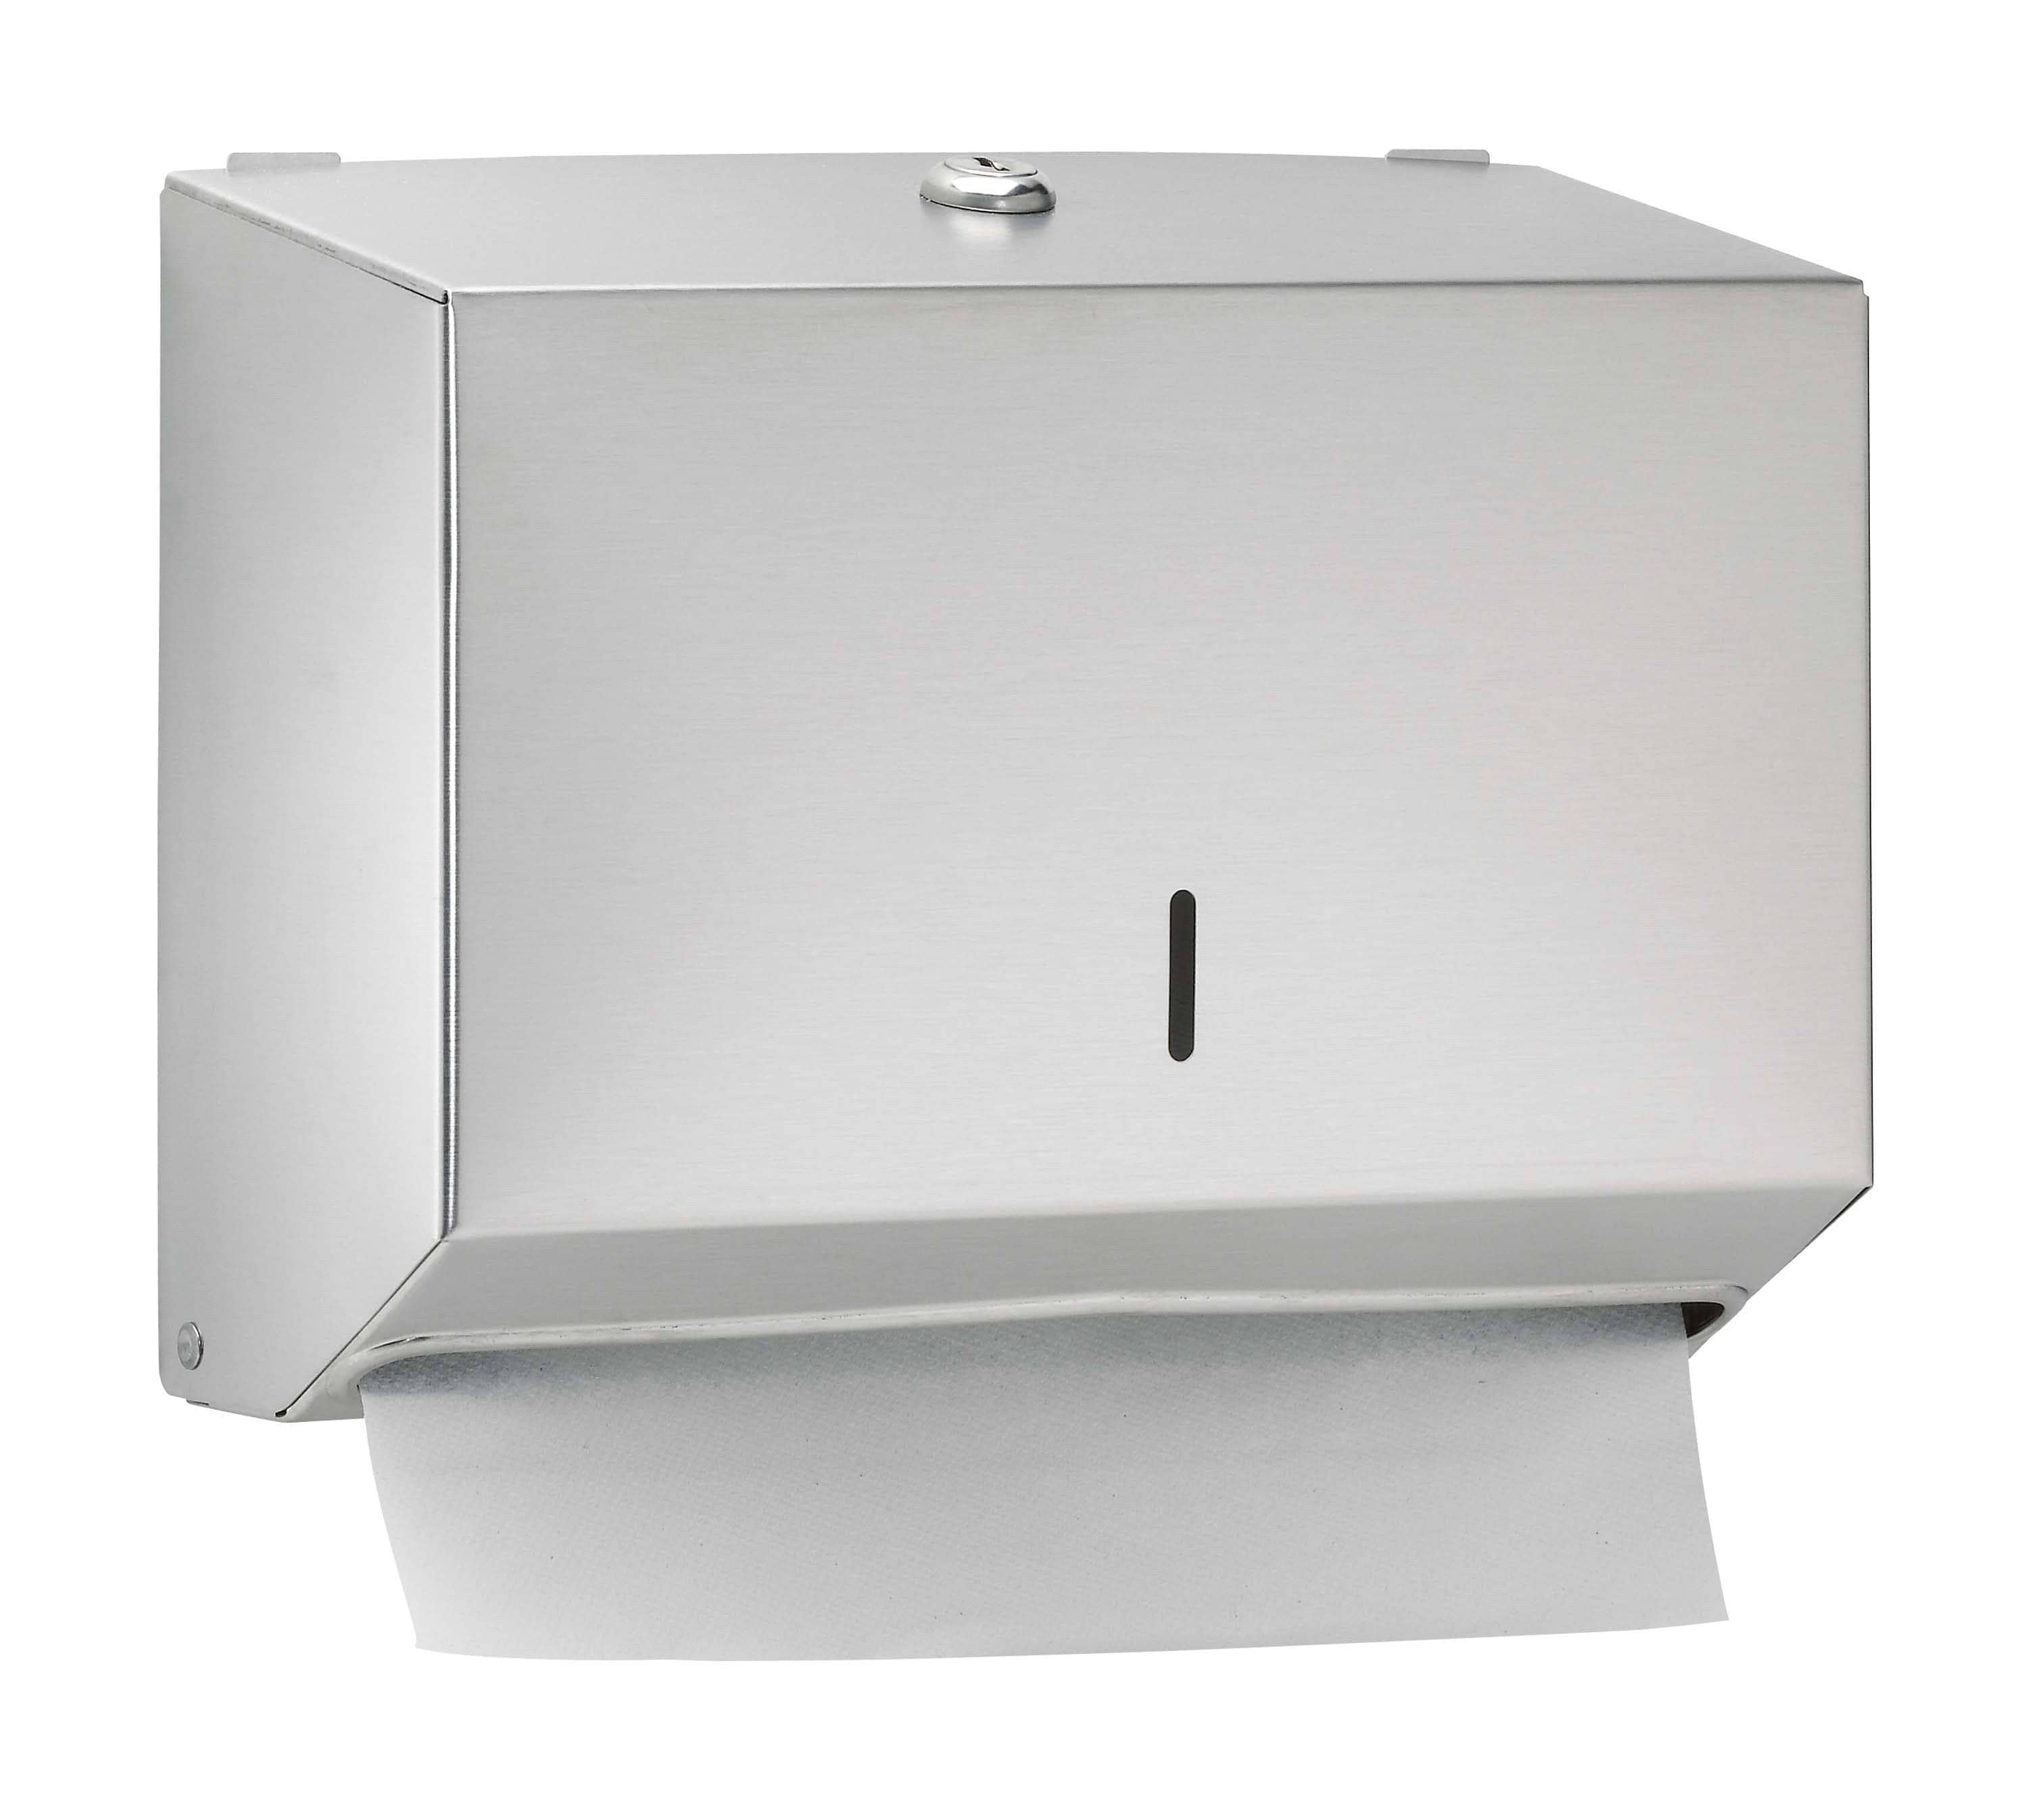 Bradley 252-00 Commercial BX-Paper Towel Dispenser, Wall Mounted, Stainless Steel - TotalRestroom.com